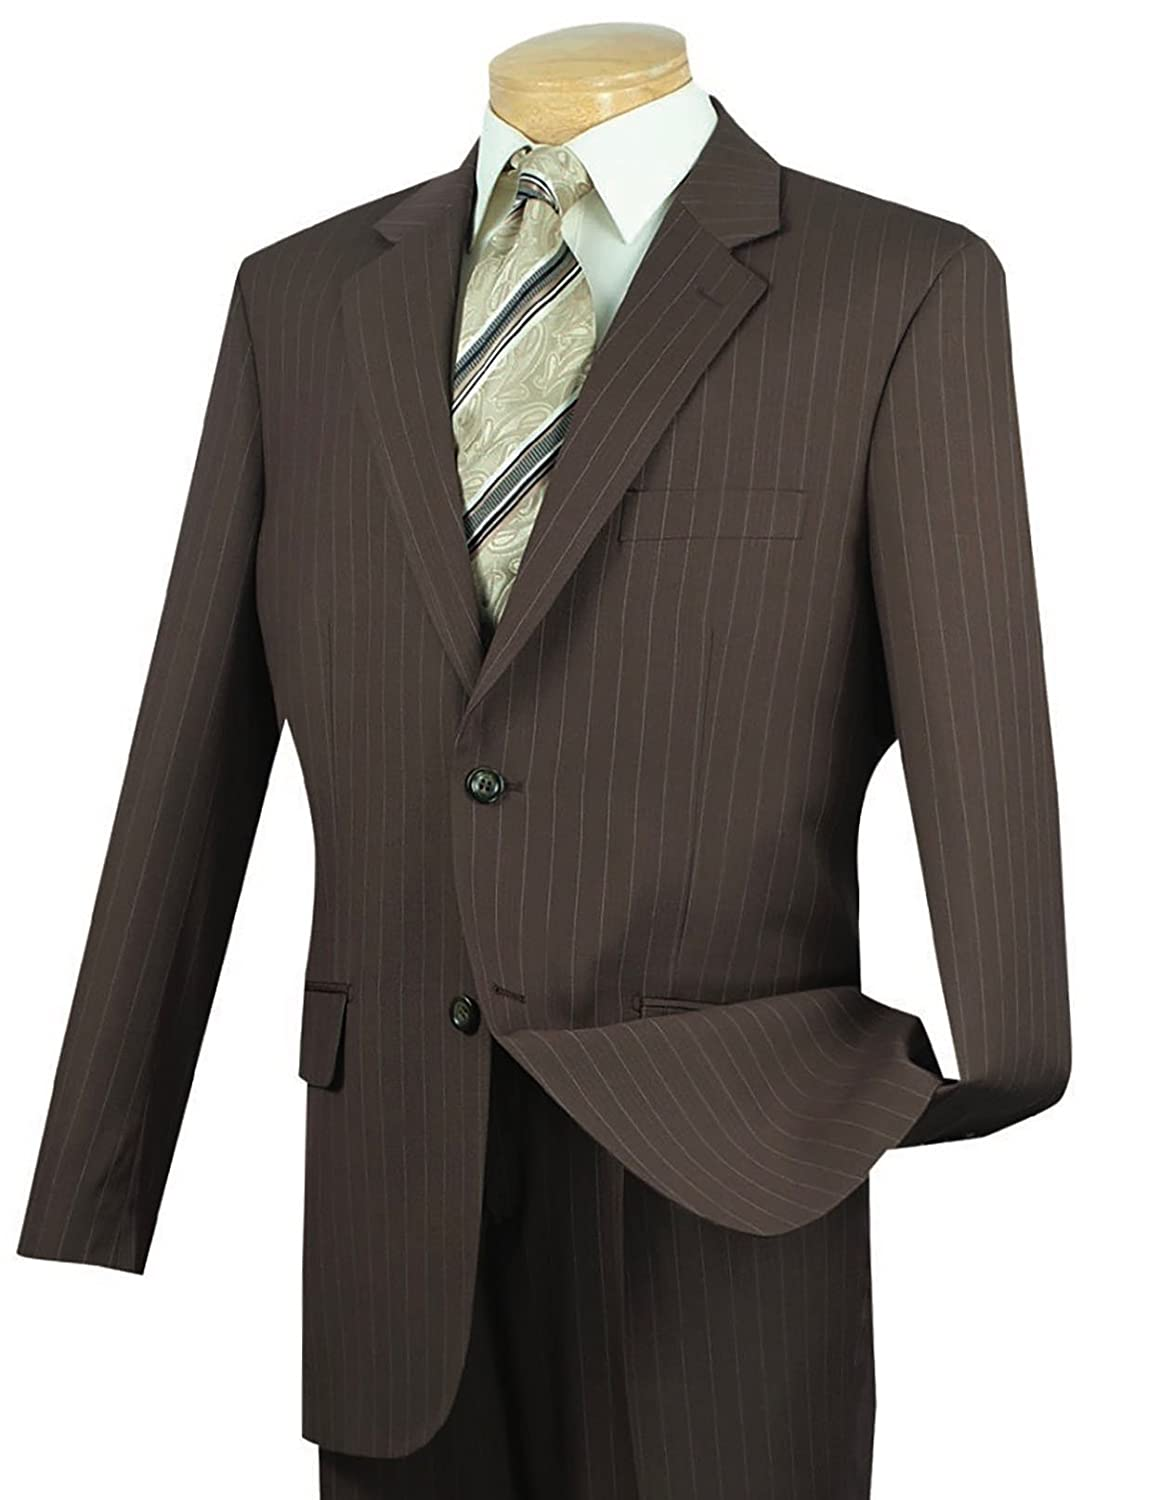 Men's Vintage Style Suits, Classic Suits VINCI Mens Pinstriped 2 Button Classic-Fit Suit New $119.95 AT vintagedancer.com